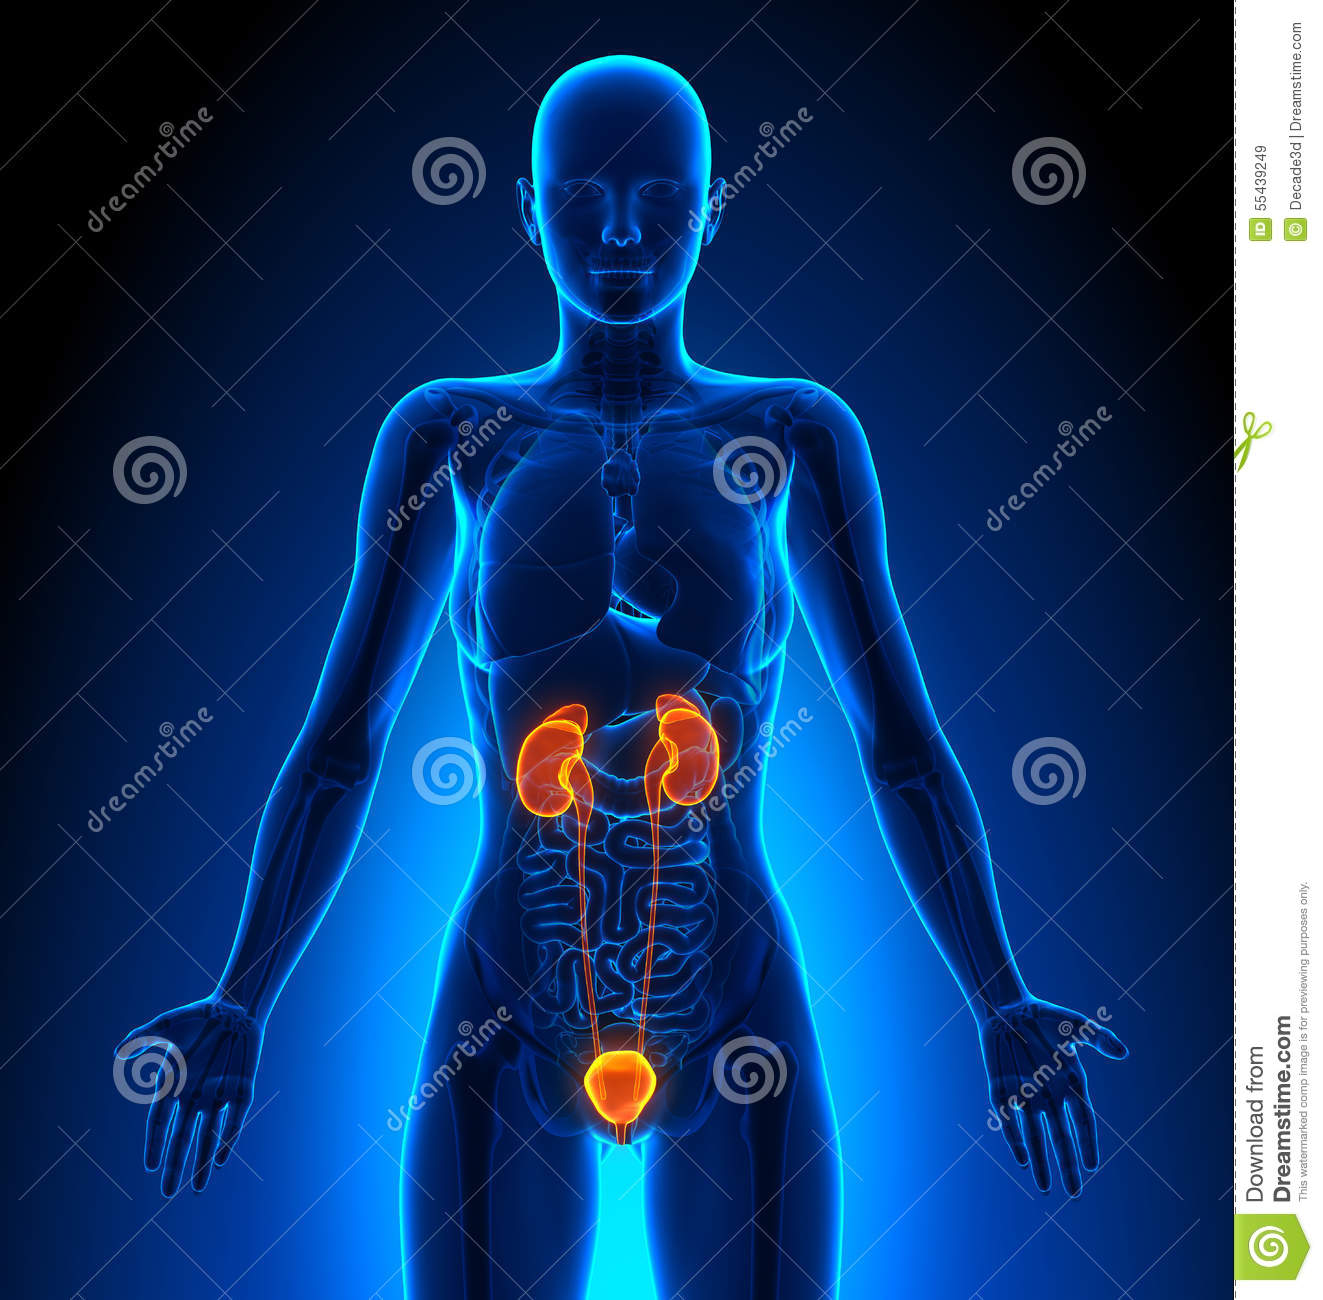 Urinary System Female Organs Human Anatomy Stock Illustration